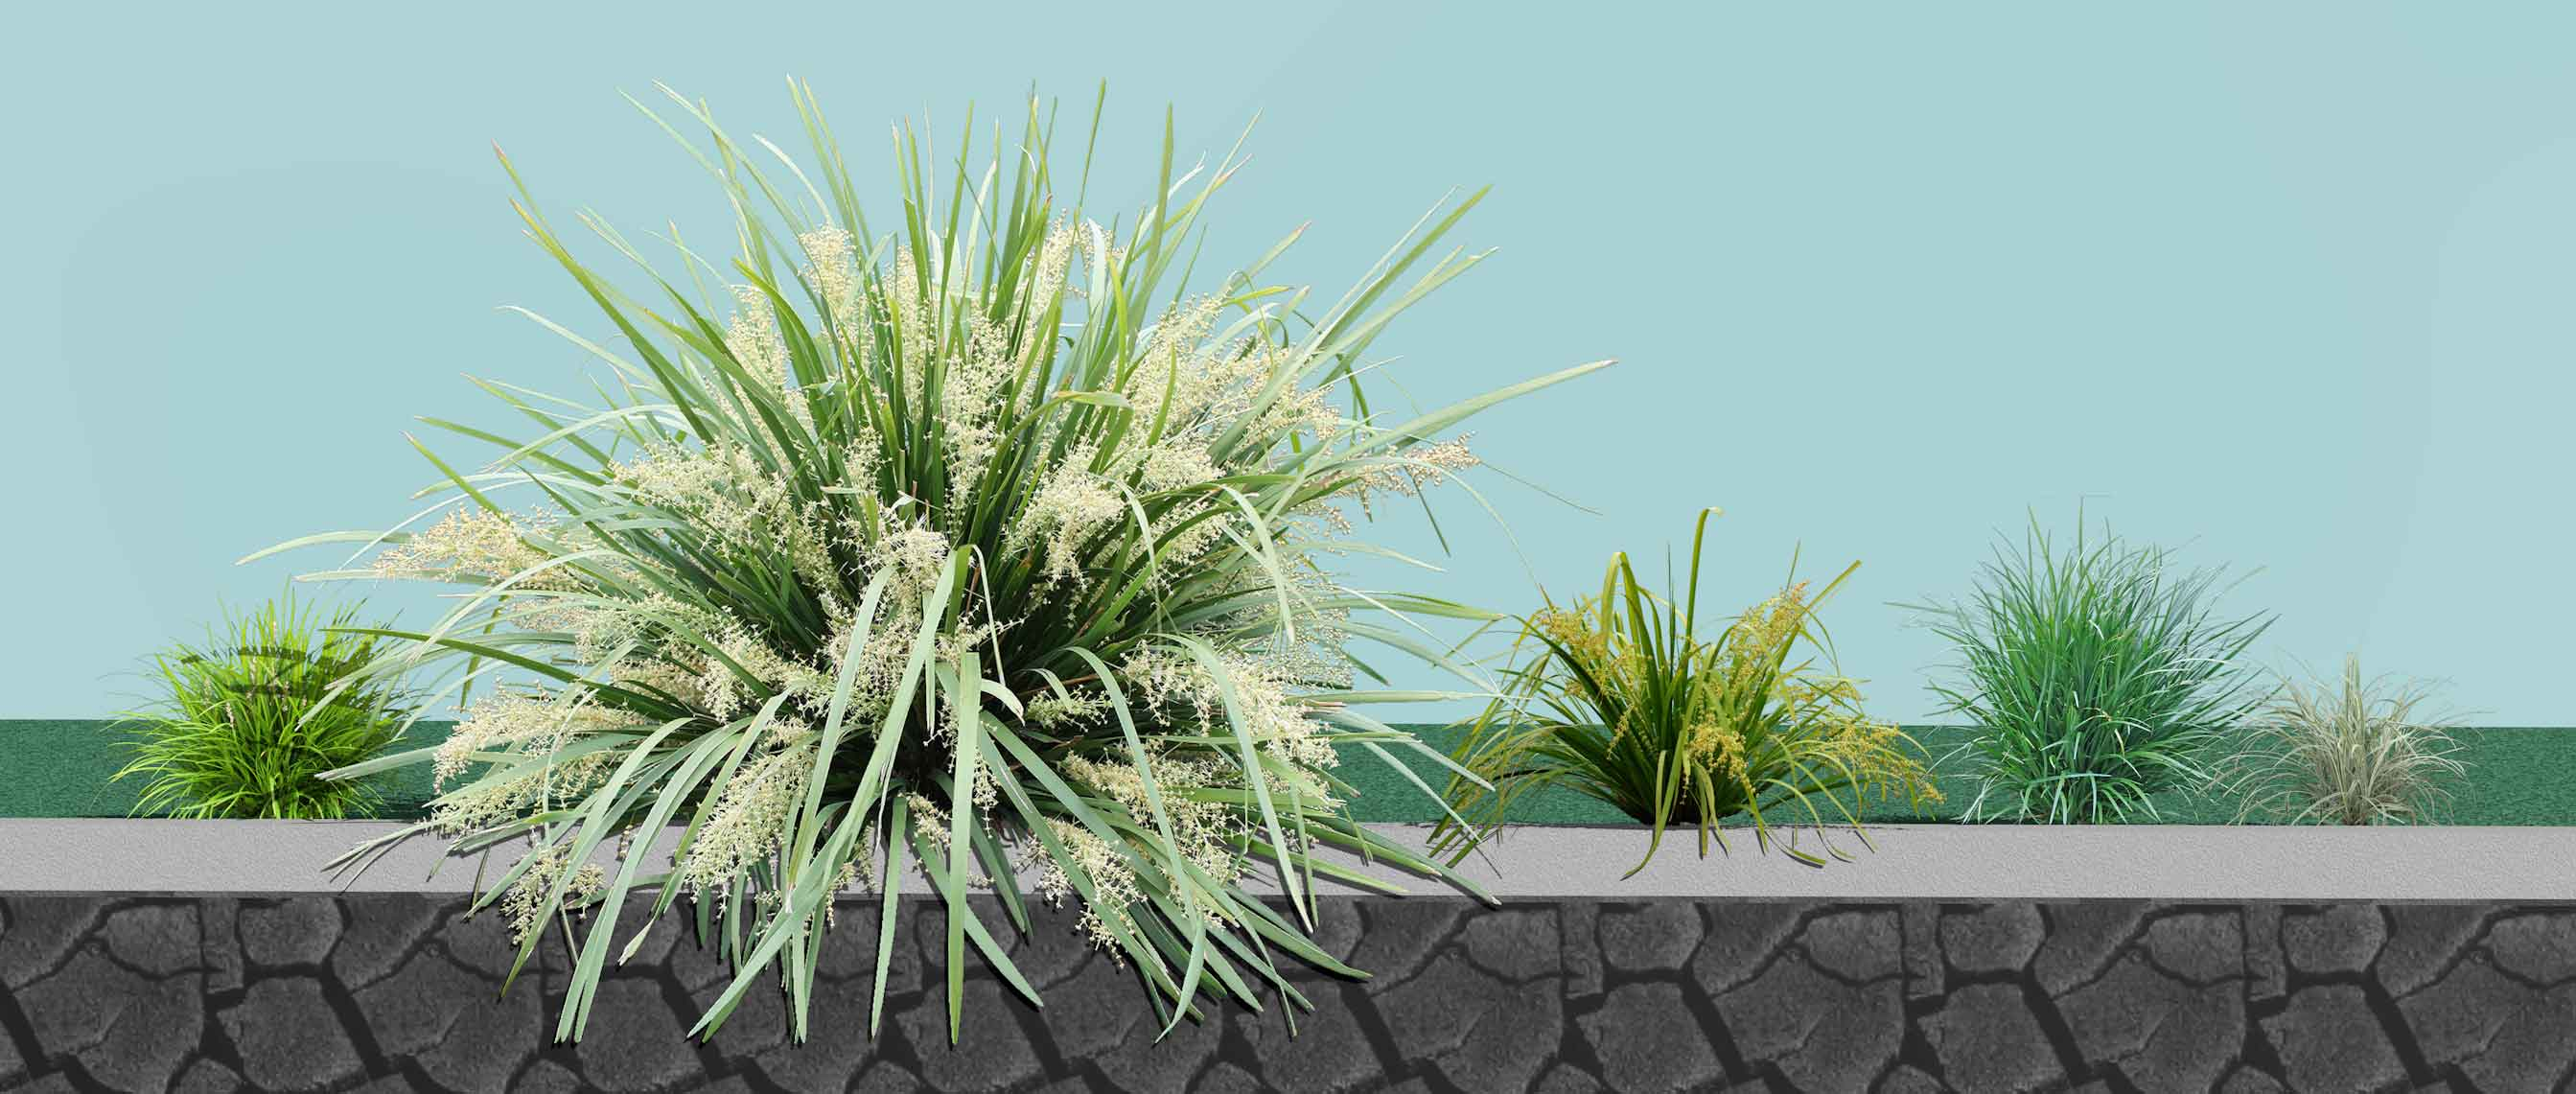 Shade Plants for Victoria Group Plantings